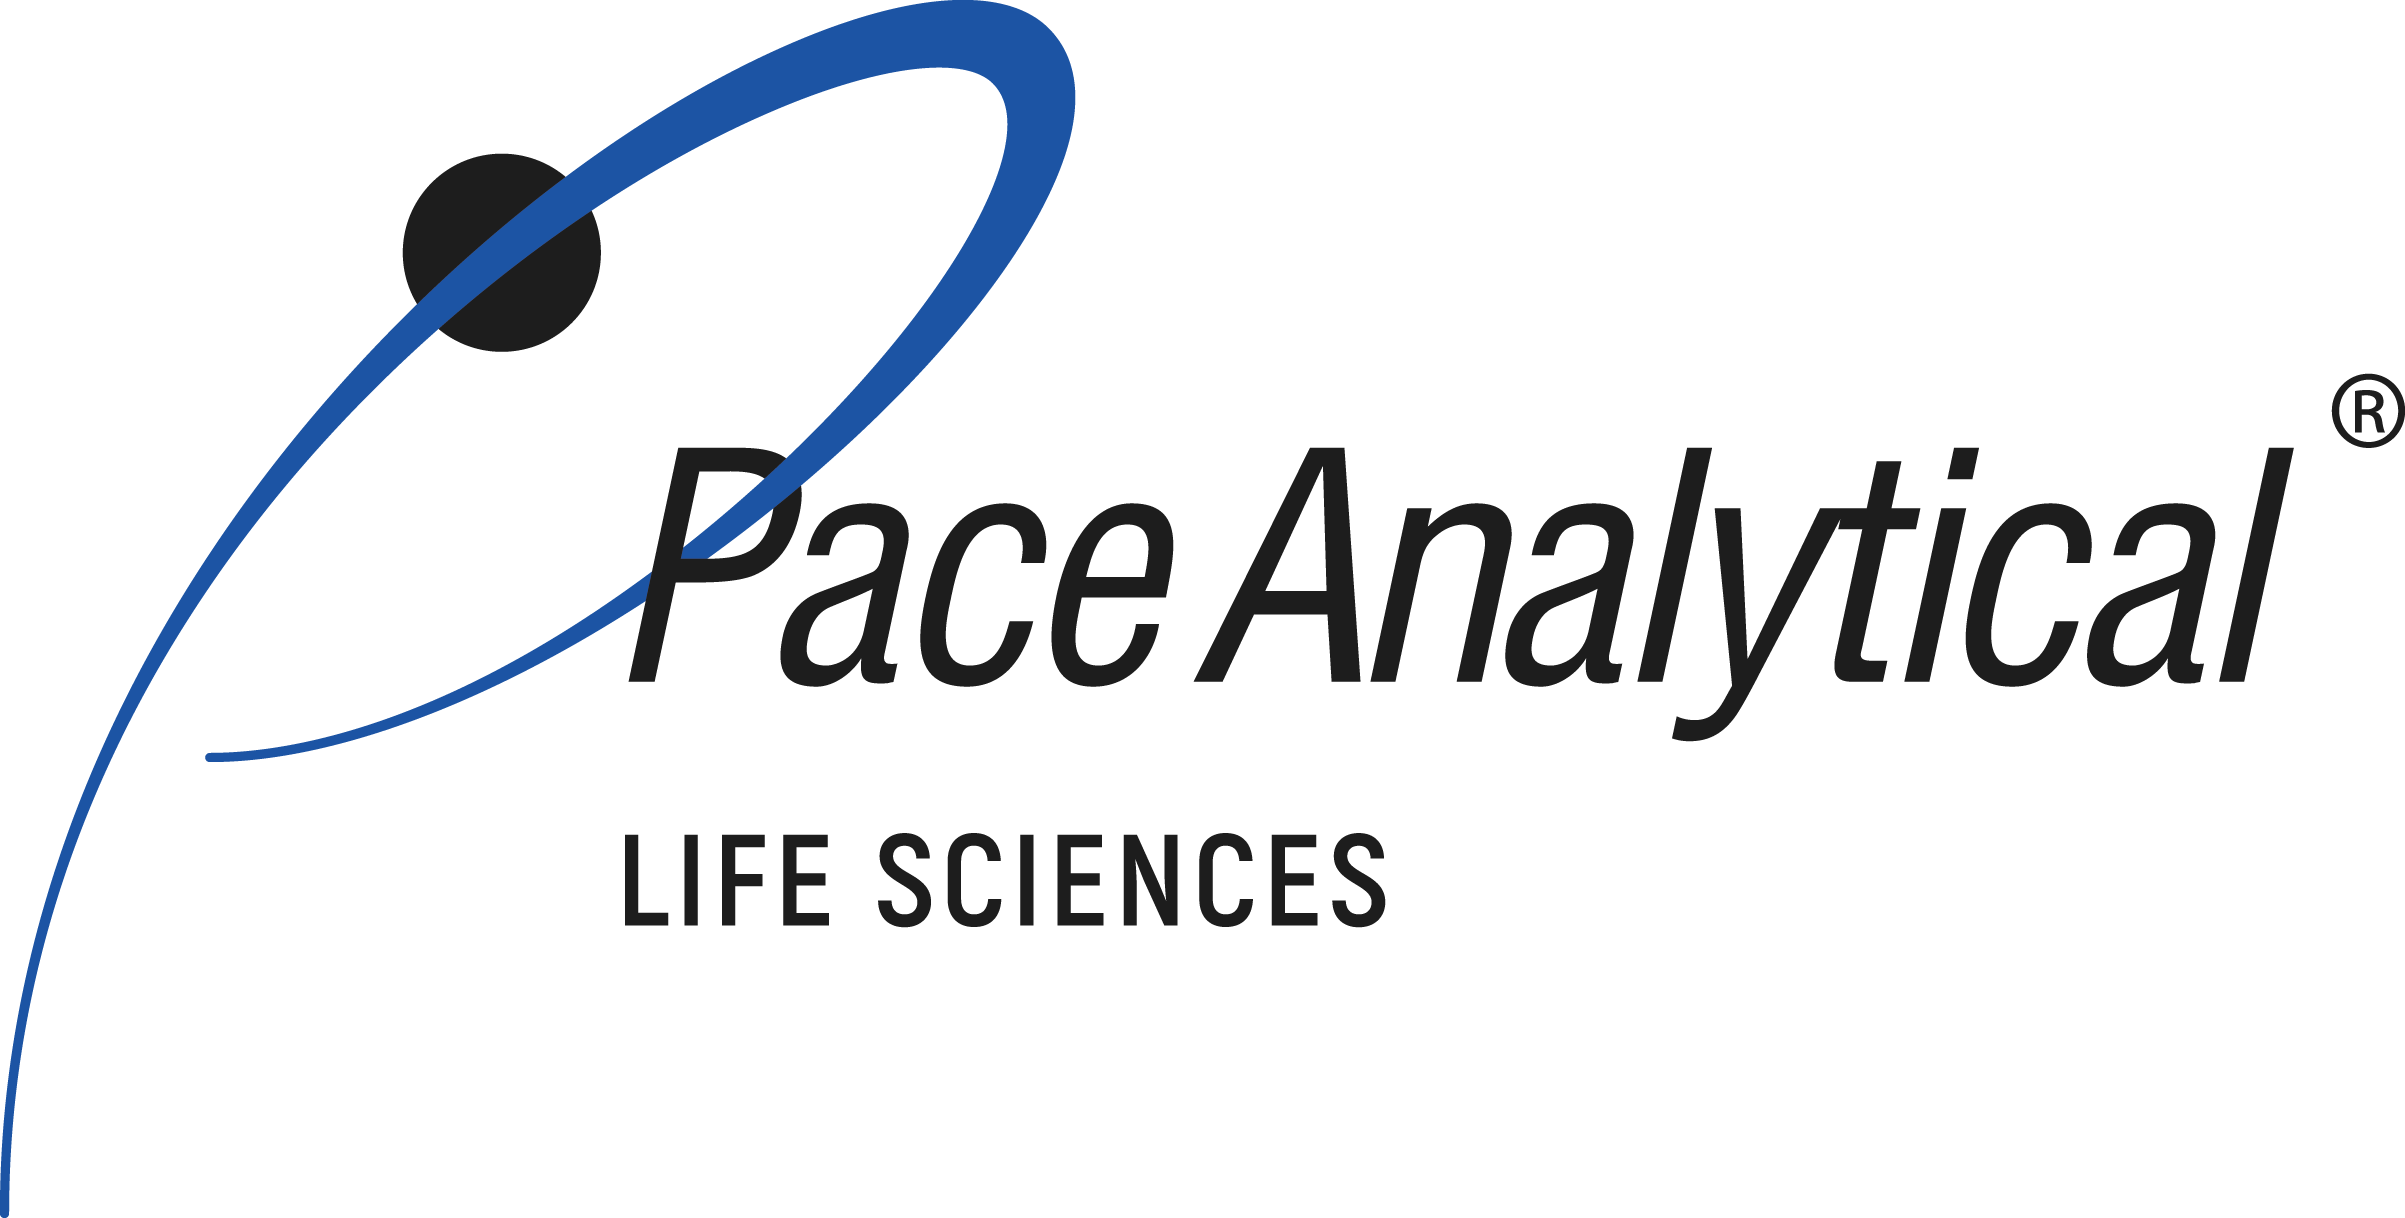 Pace Analytical Life Sciences - Logo 2019 PNG